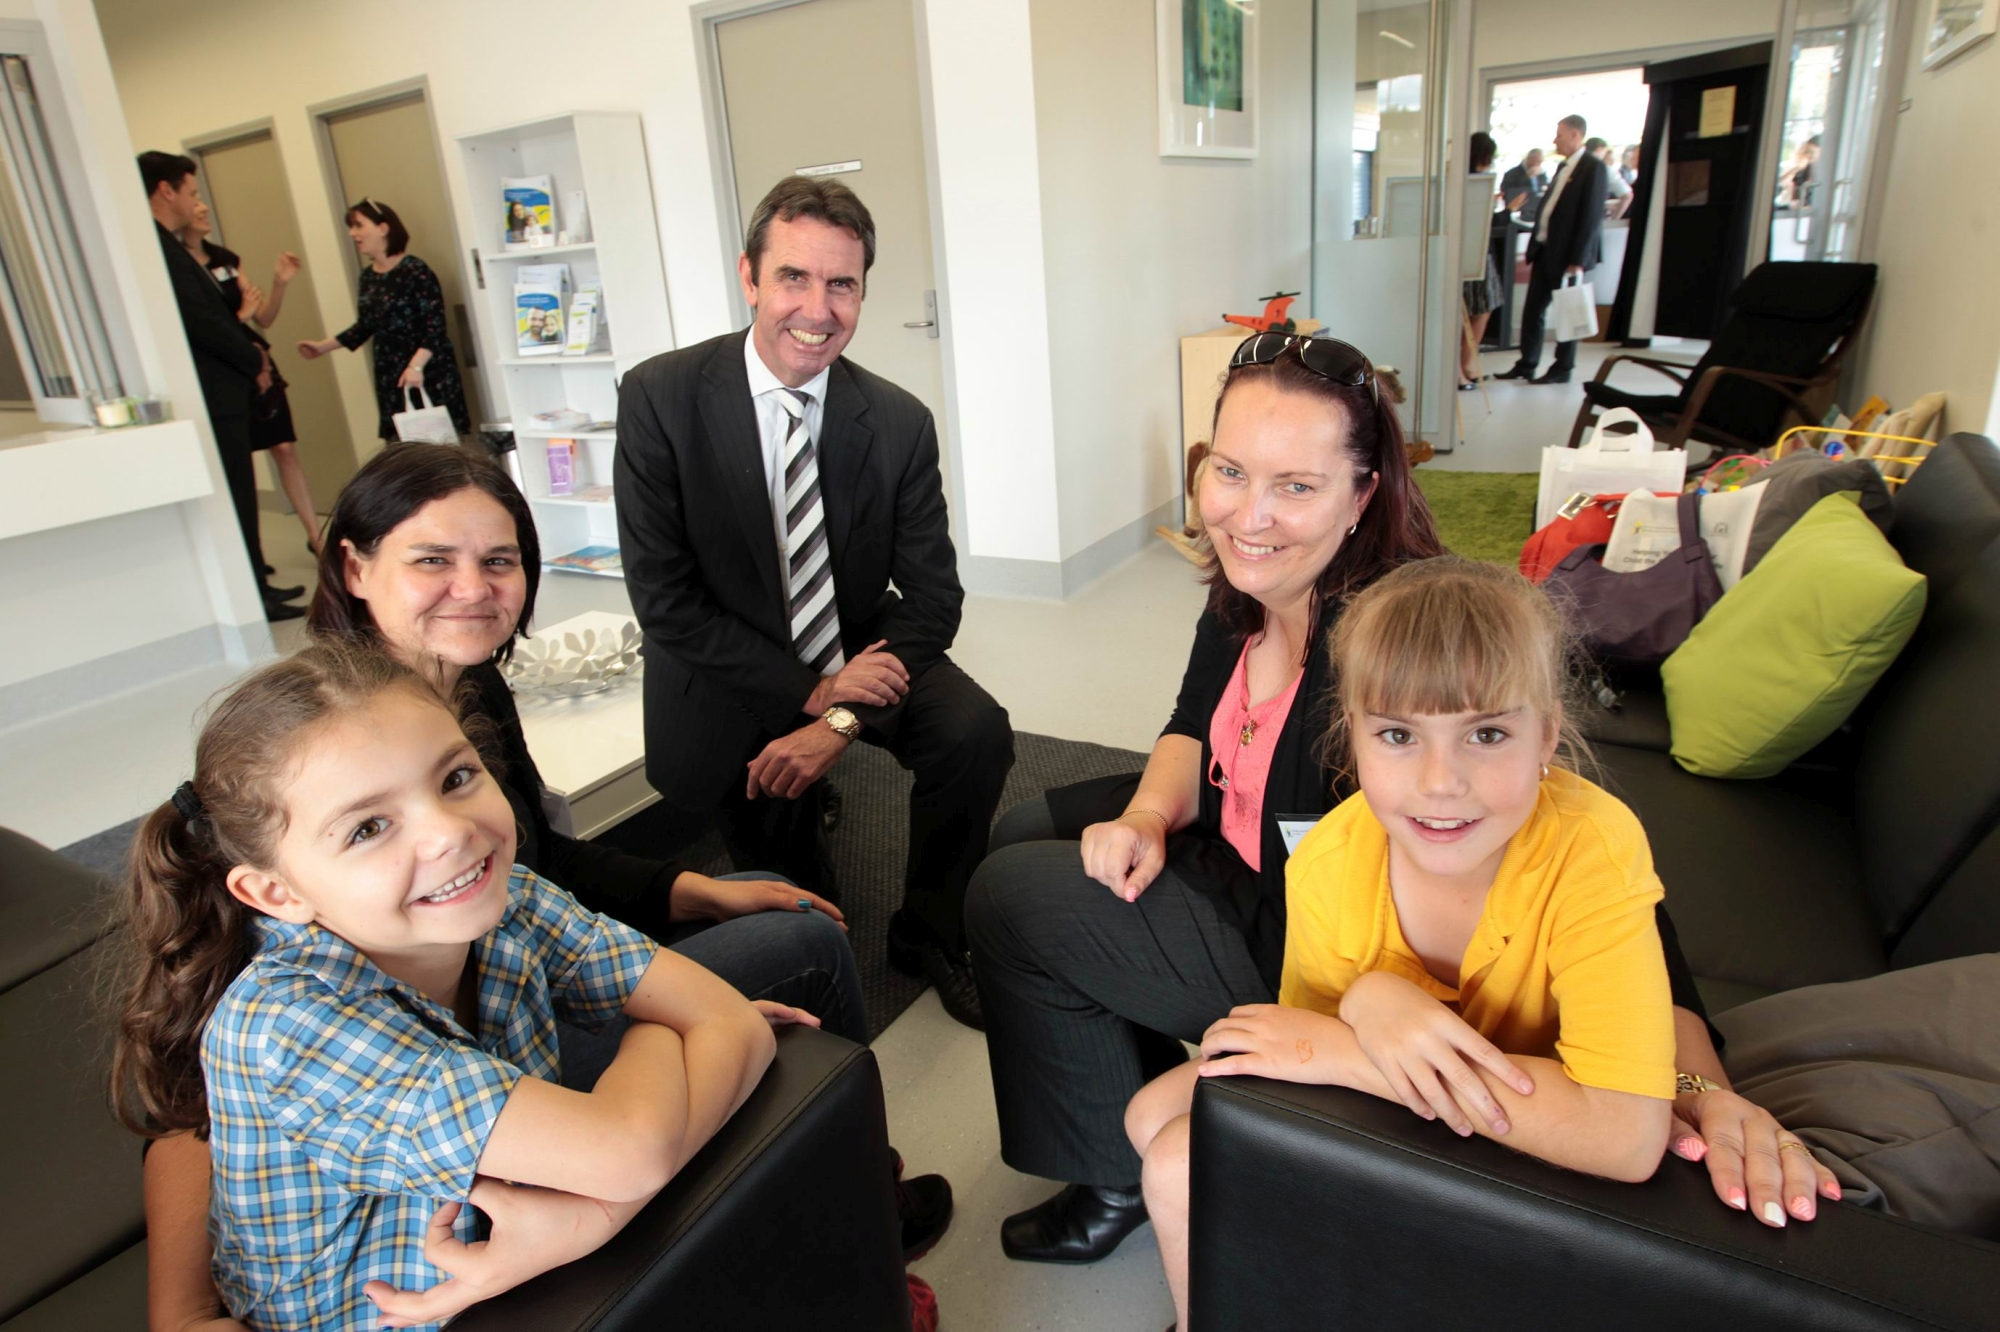 Briony McShade and her daughter Devah (Year 2) with Education Minister Peter Collier and Sabine Huehnerbein and daughter Annalee. d426860a